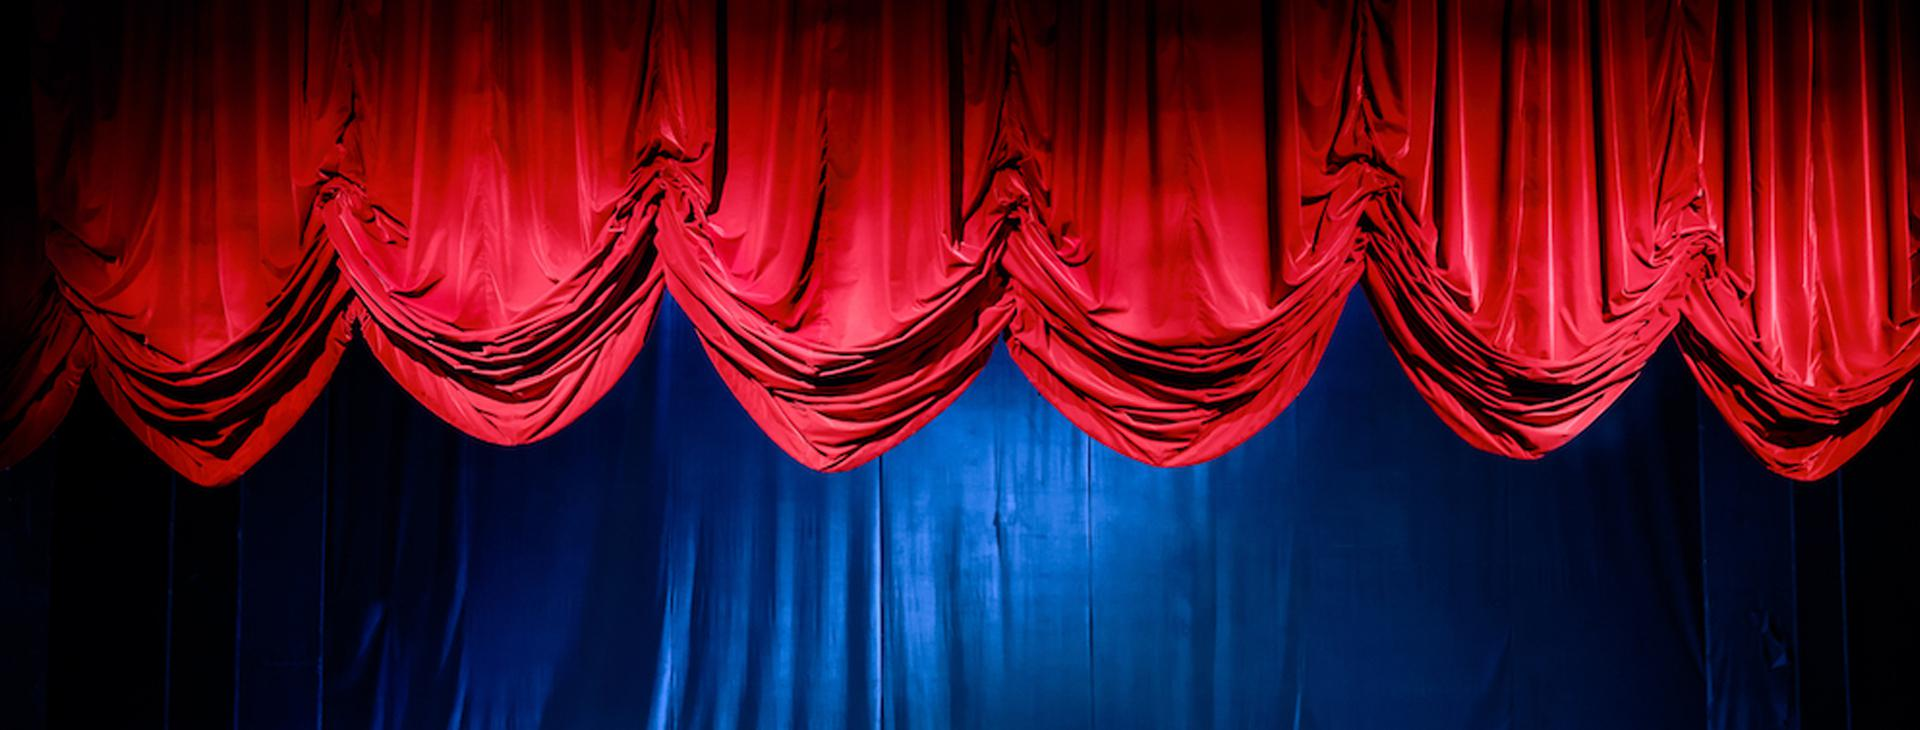 Welcome to Stage Curtains India